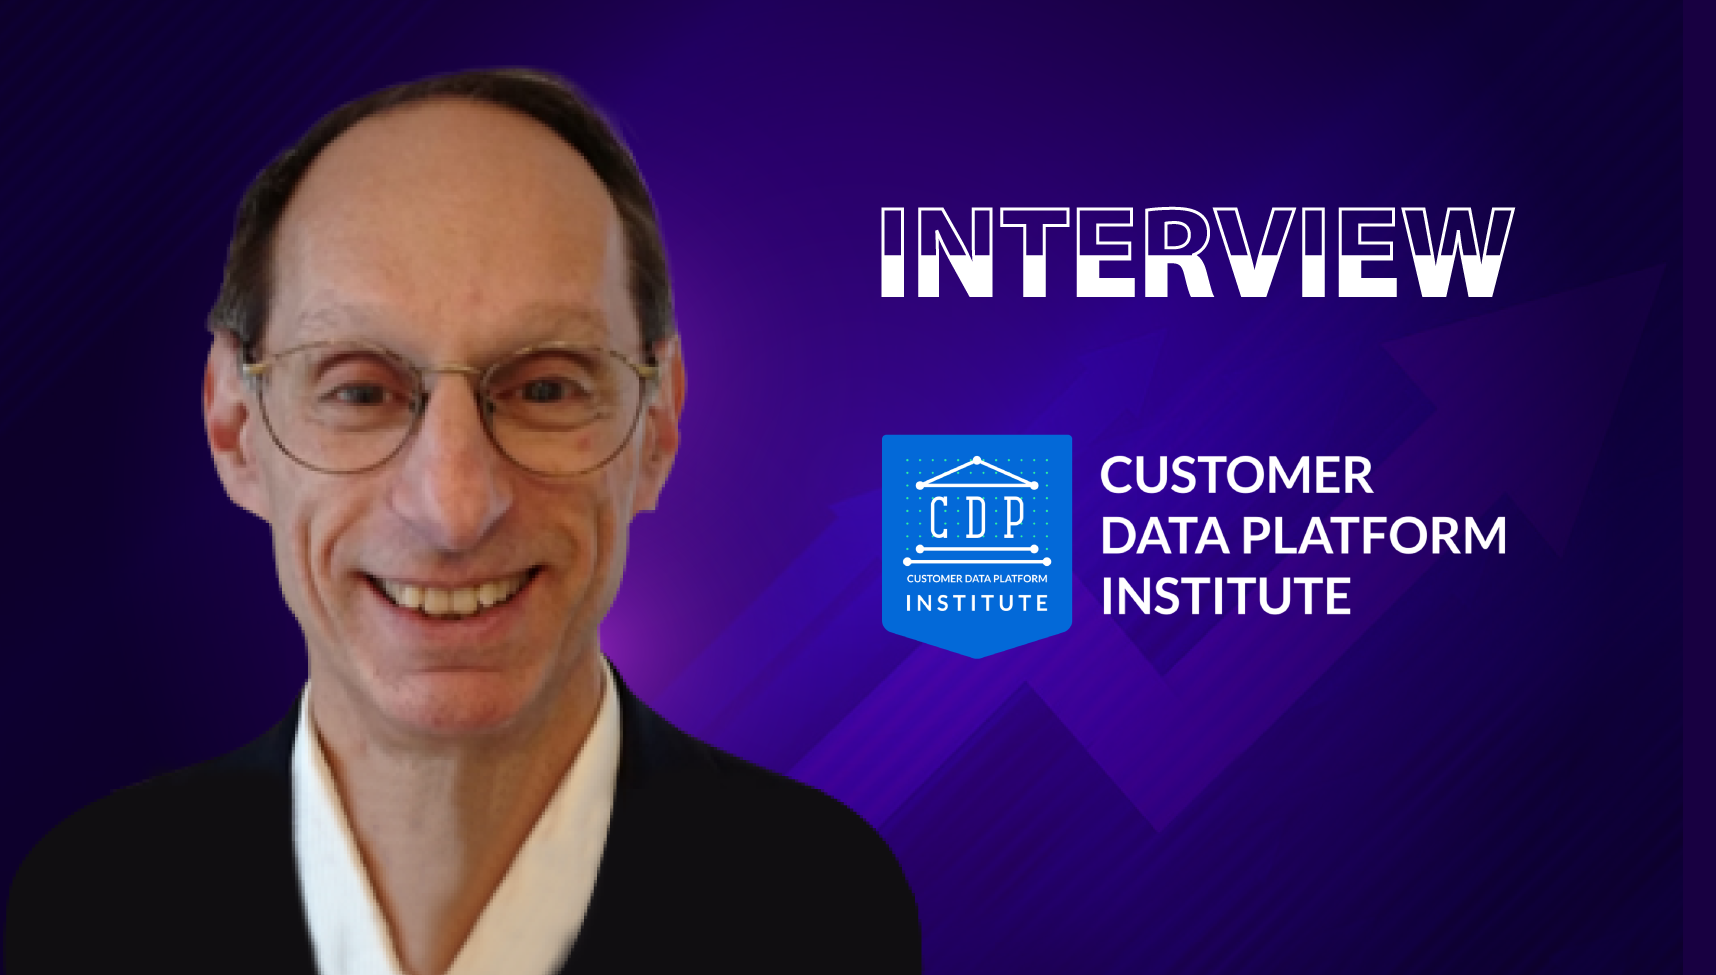 SalesTech Star Interview With David Raab, Founder and CEO at The CDP Institute